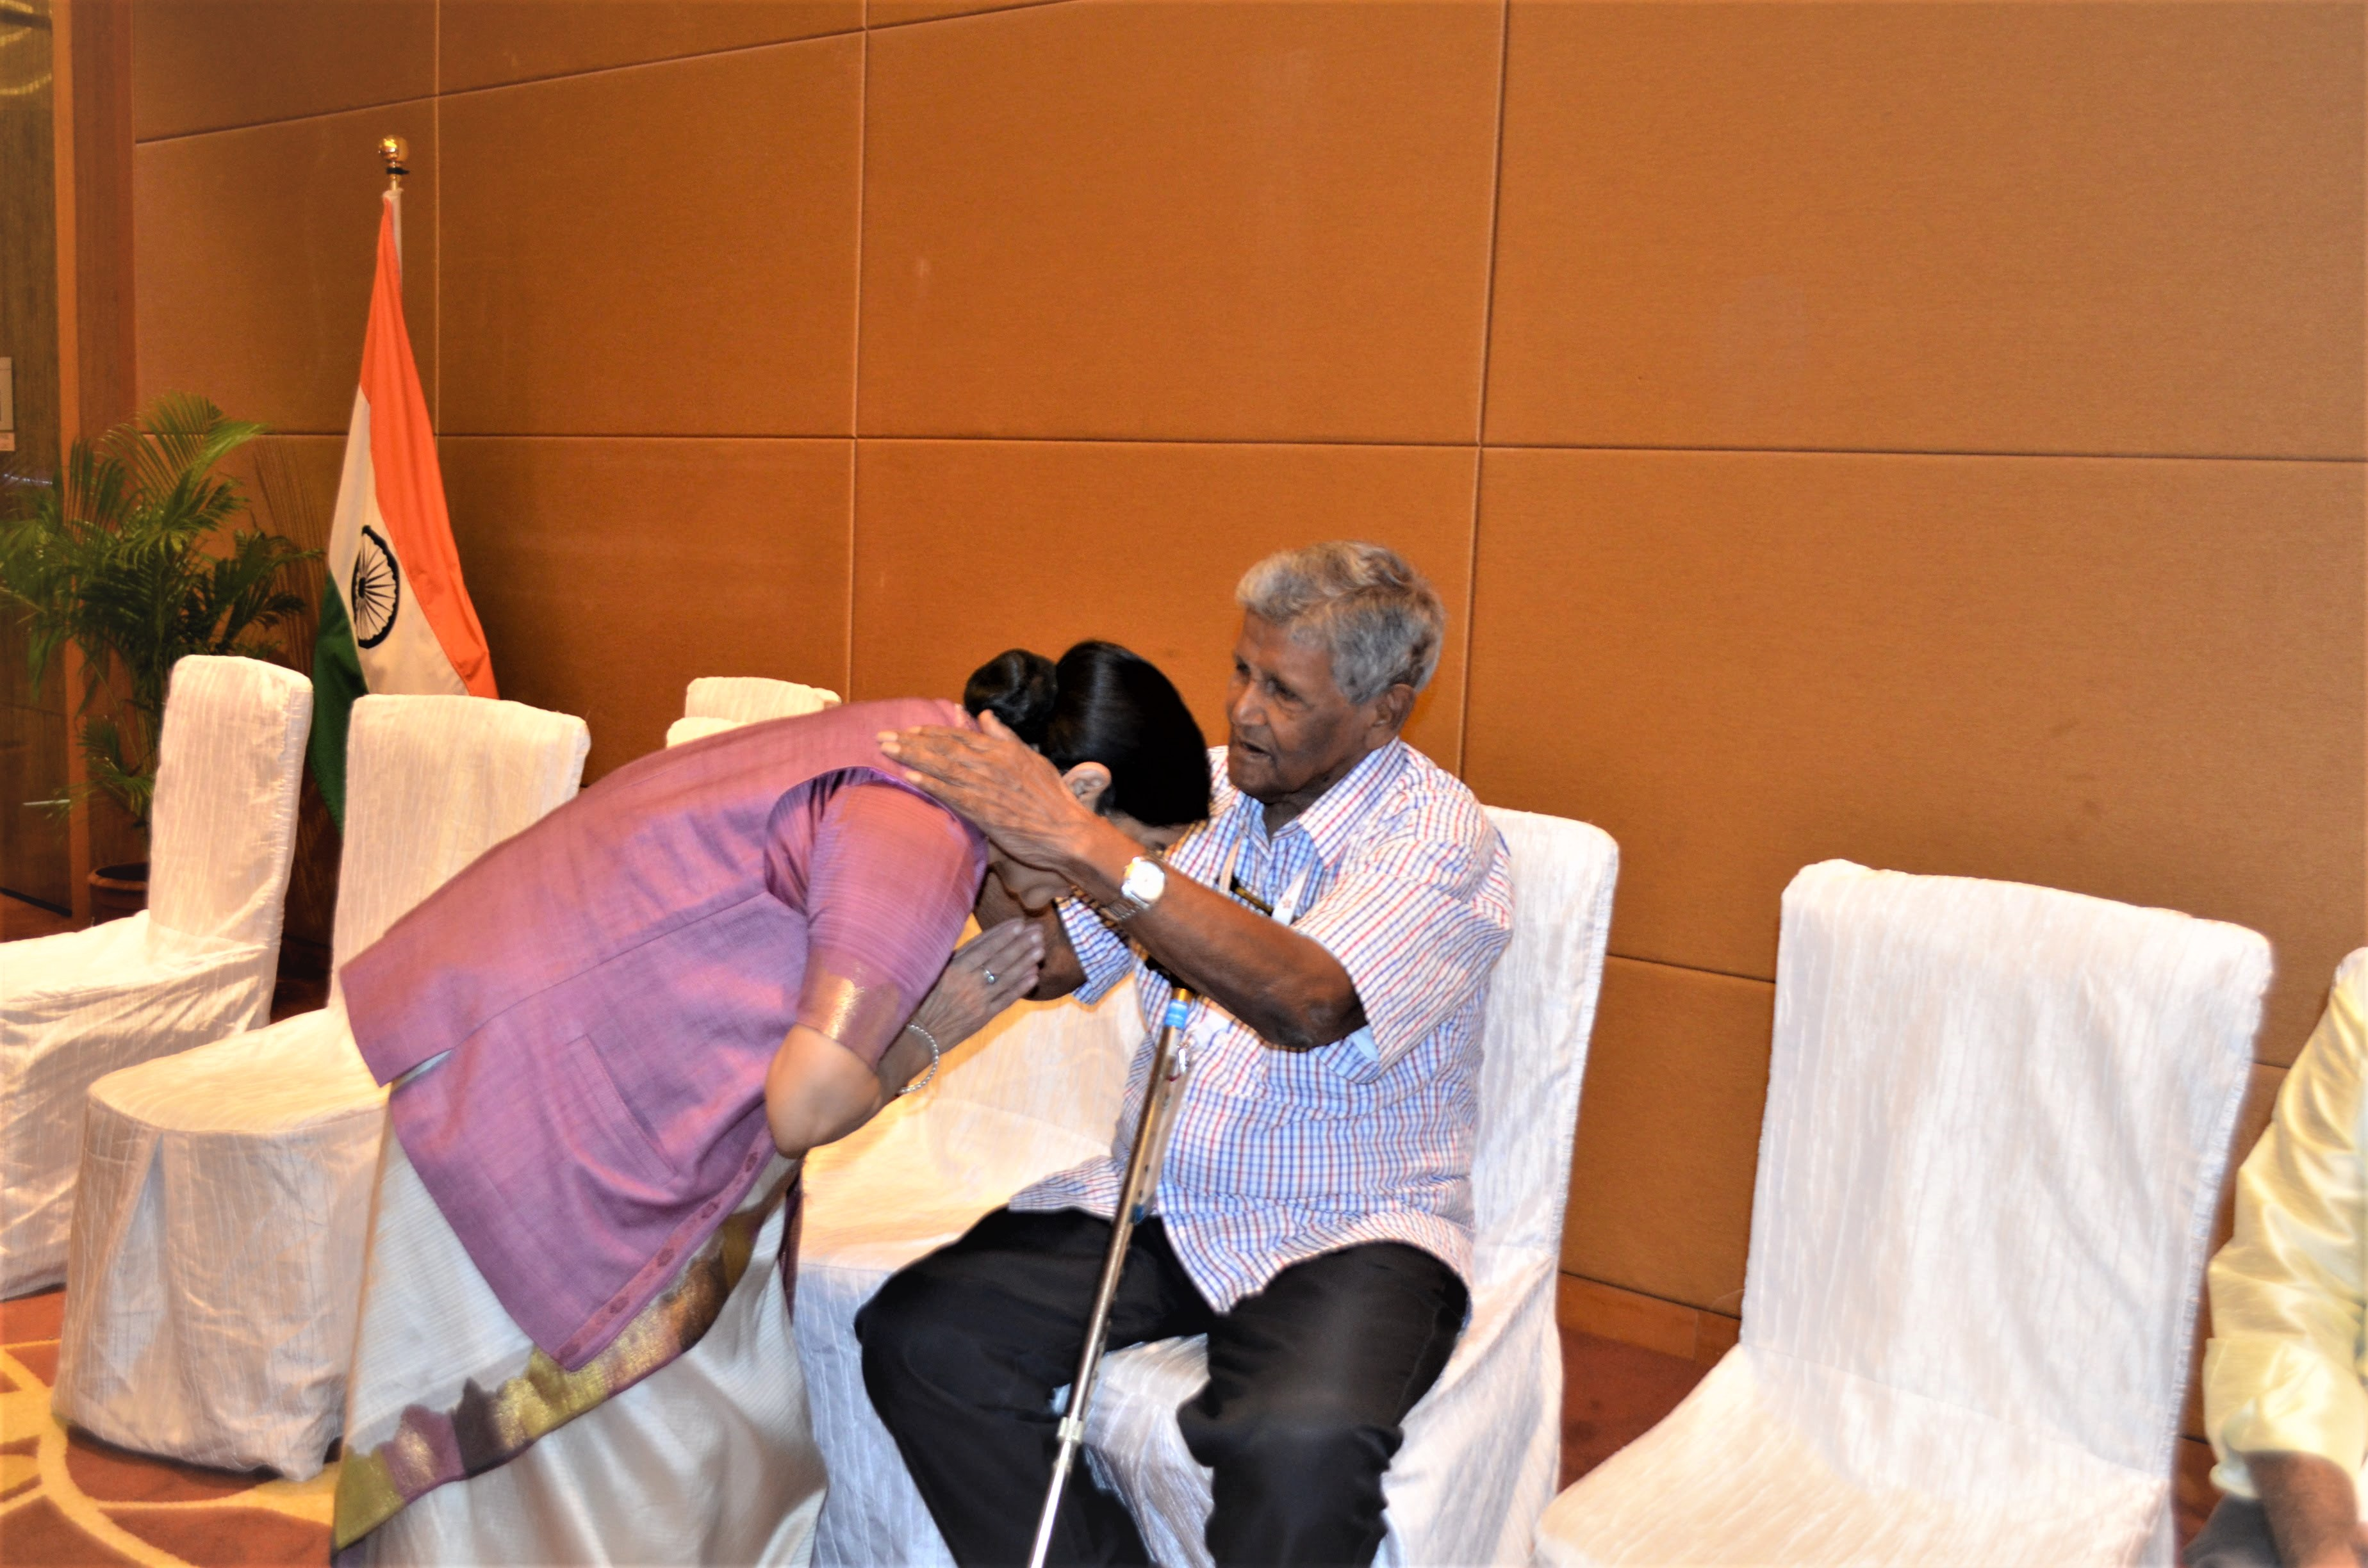 Sushma Swaraj greeting Indian National Army veteran at the ASEAN India PBD.